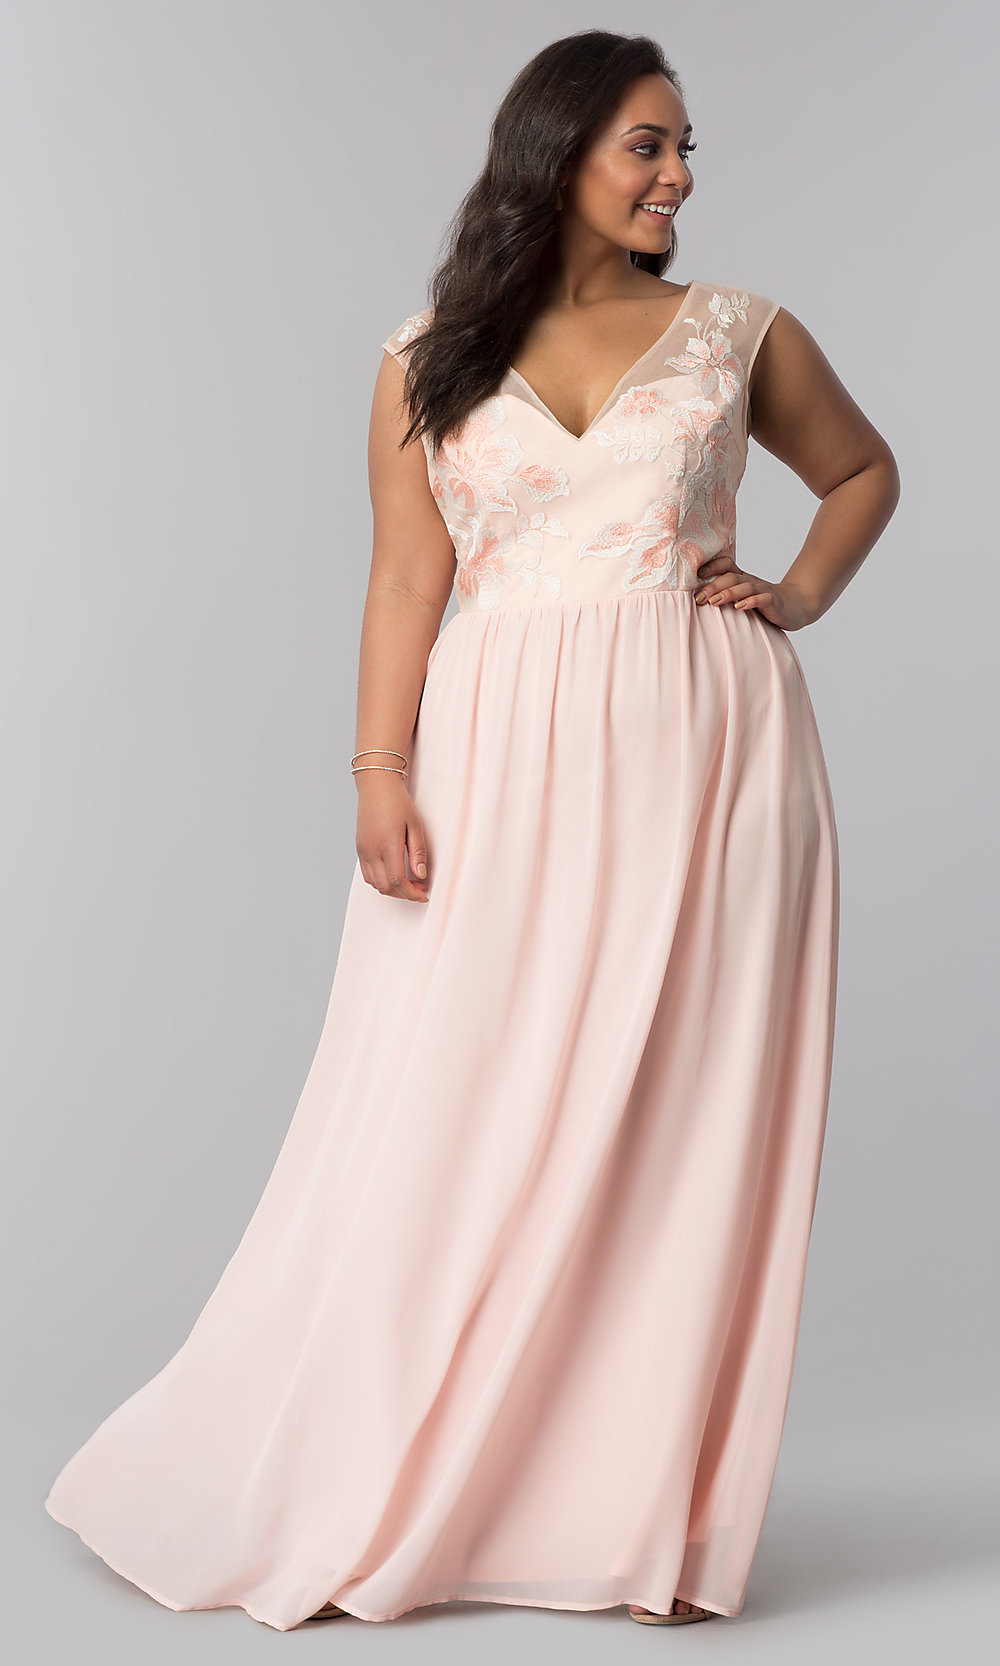 V-Neck Plus-Size Prom Dress in Blush Pink - PromGirl